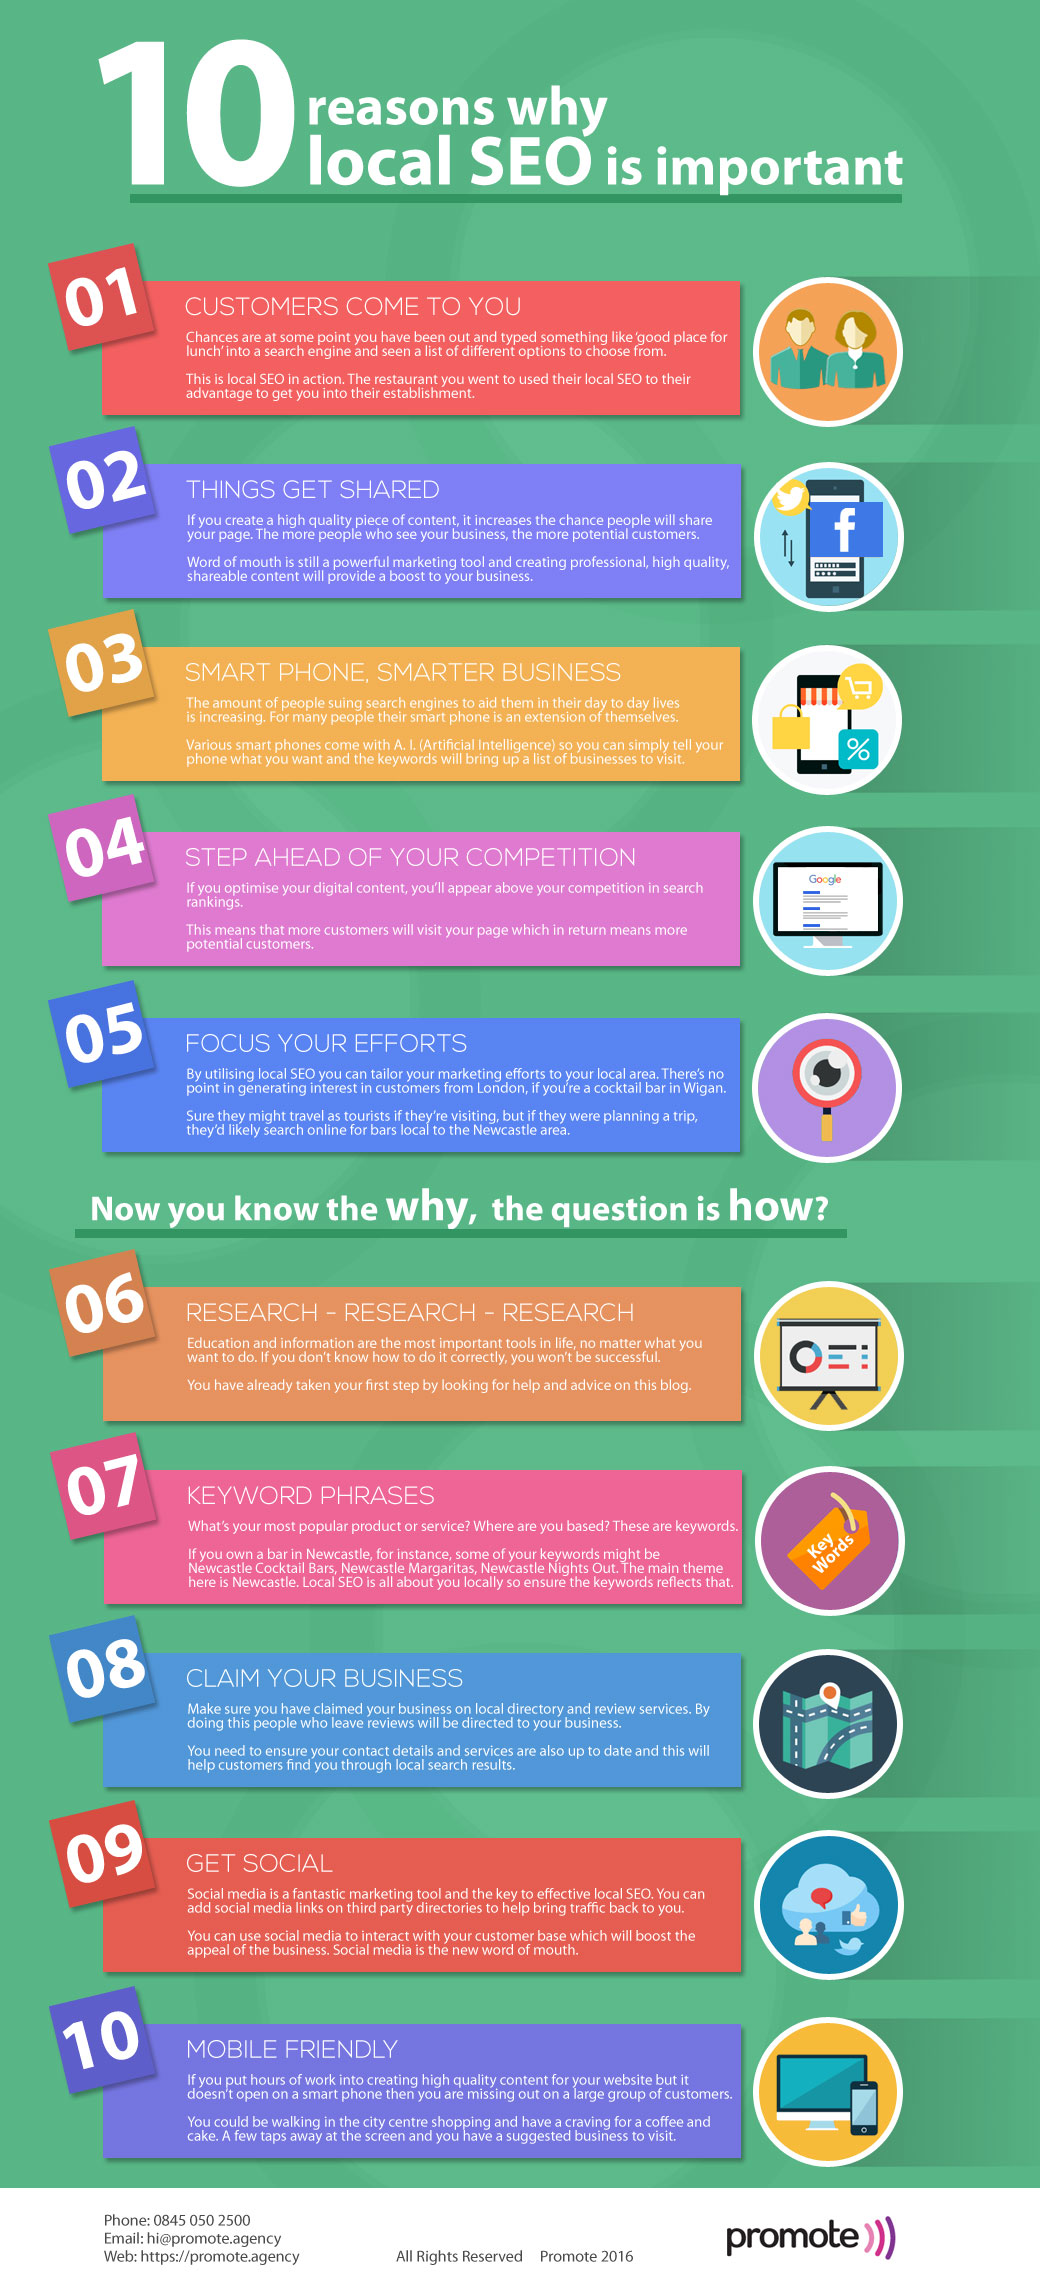 Promote-Blog-Infographic-local-SEO.jpg